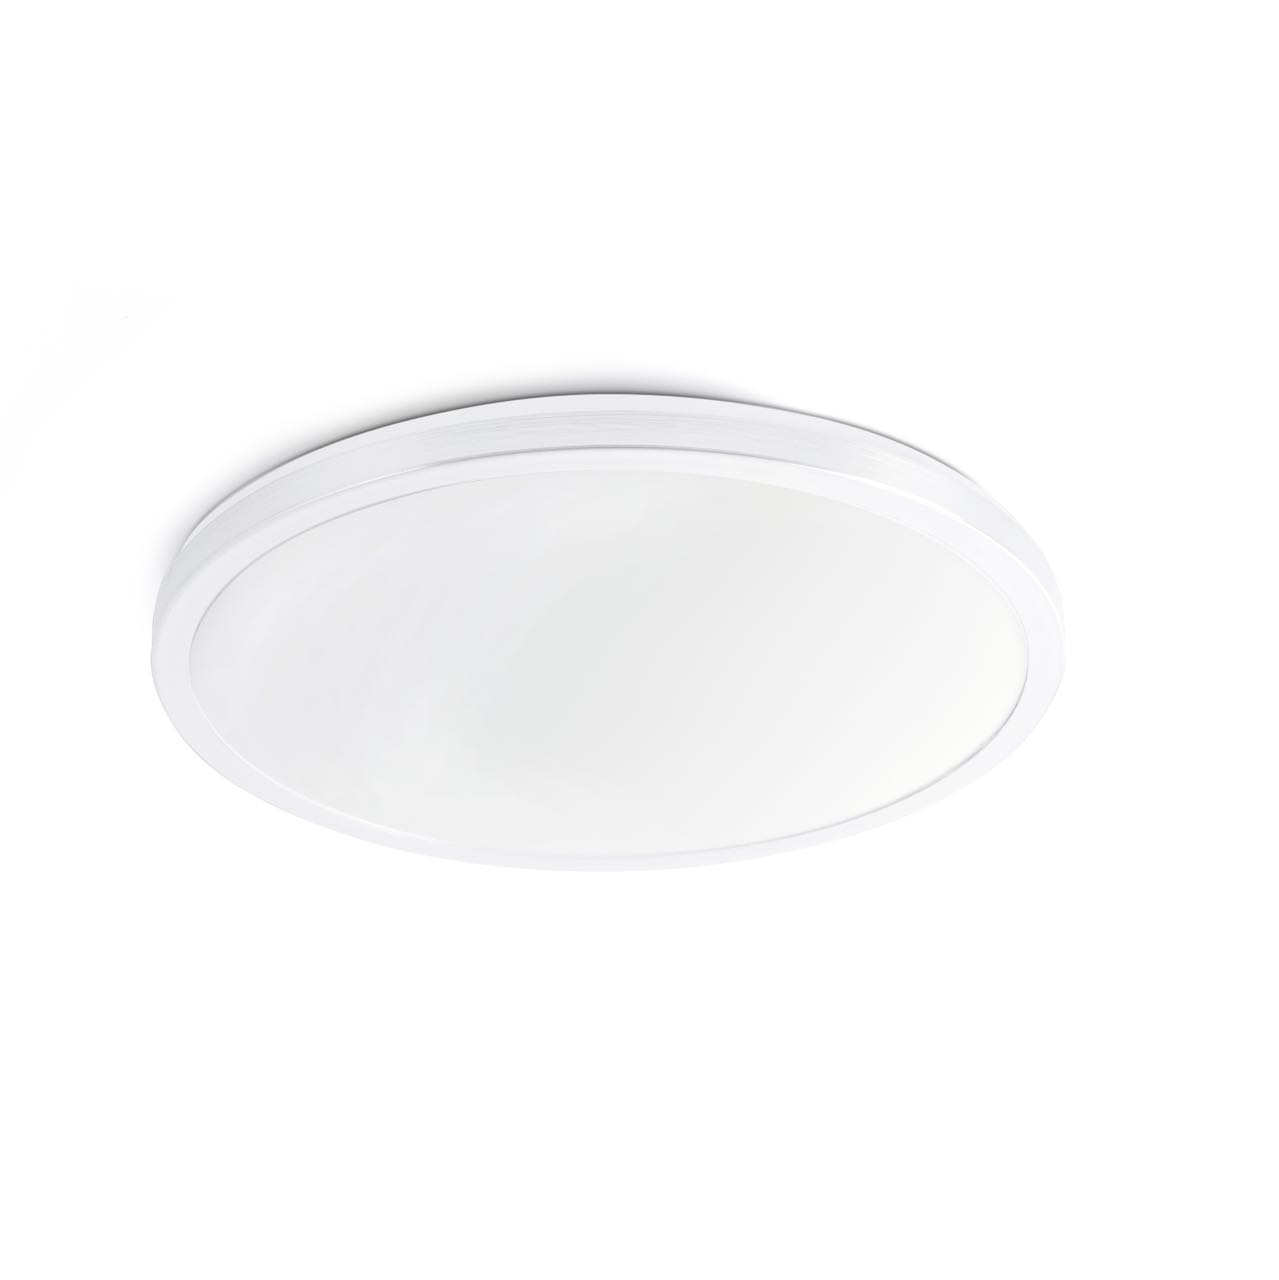 Lampara led para cocina aplique de pared gipsy chatou - Lampara led para cocina ...